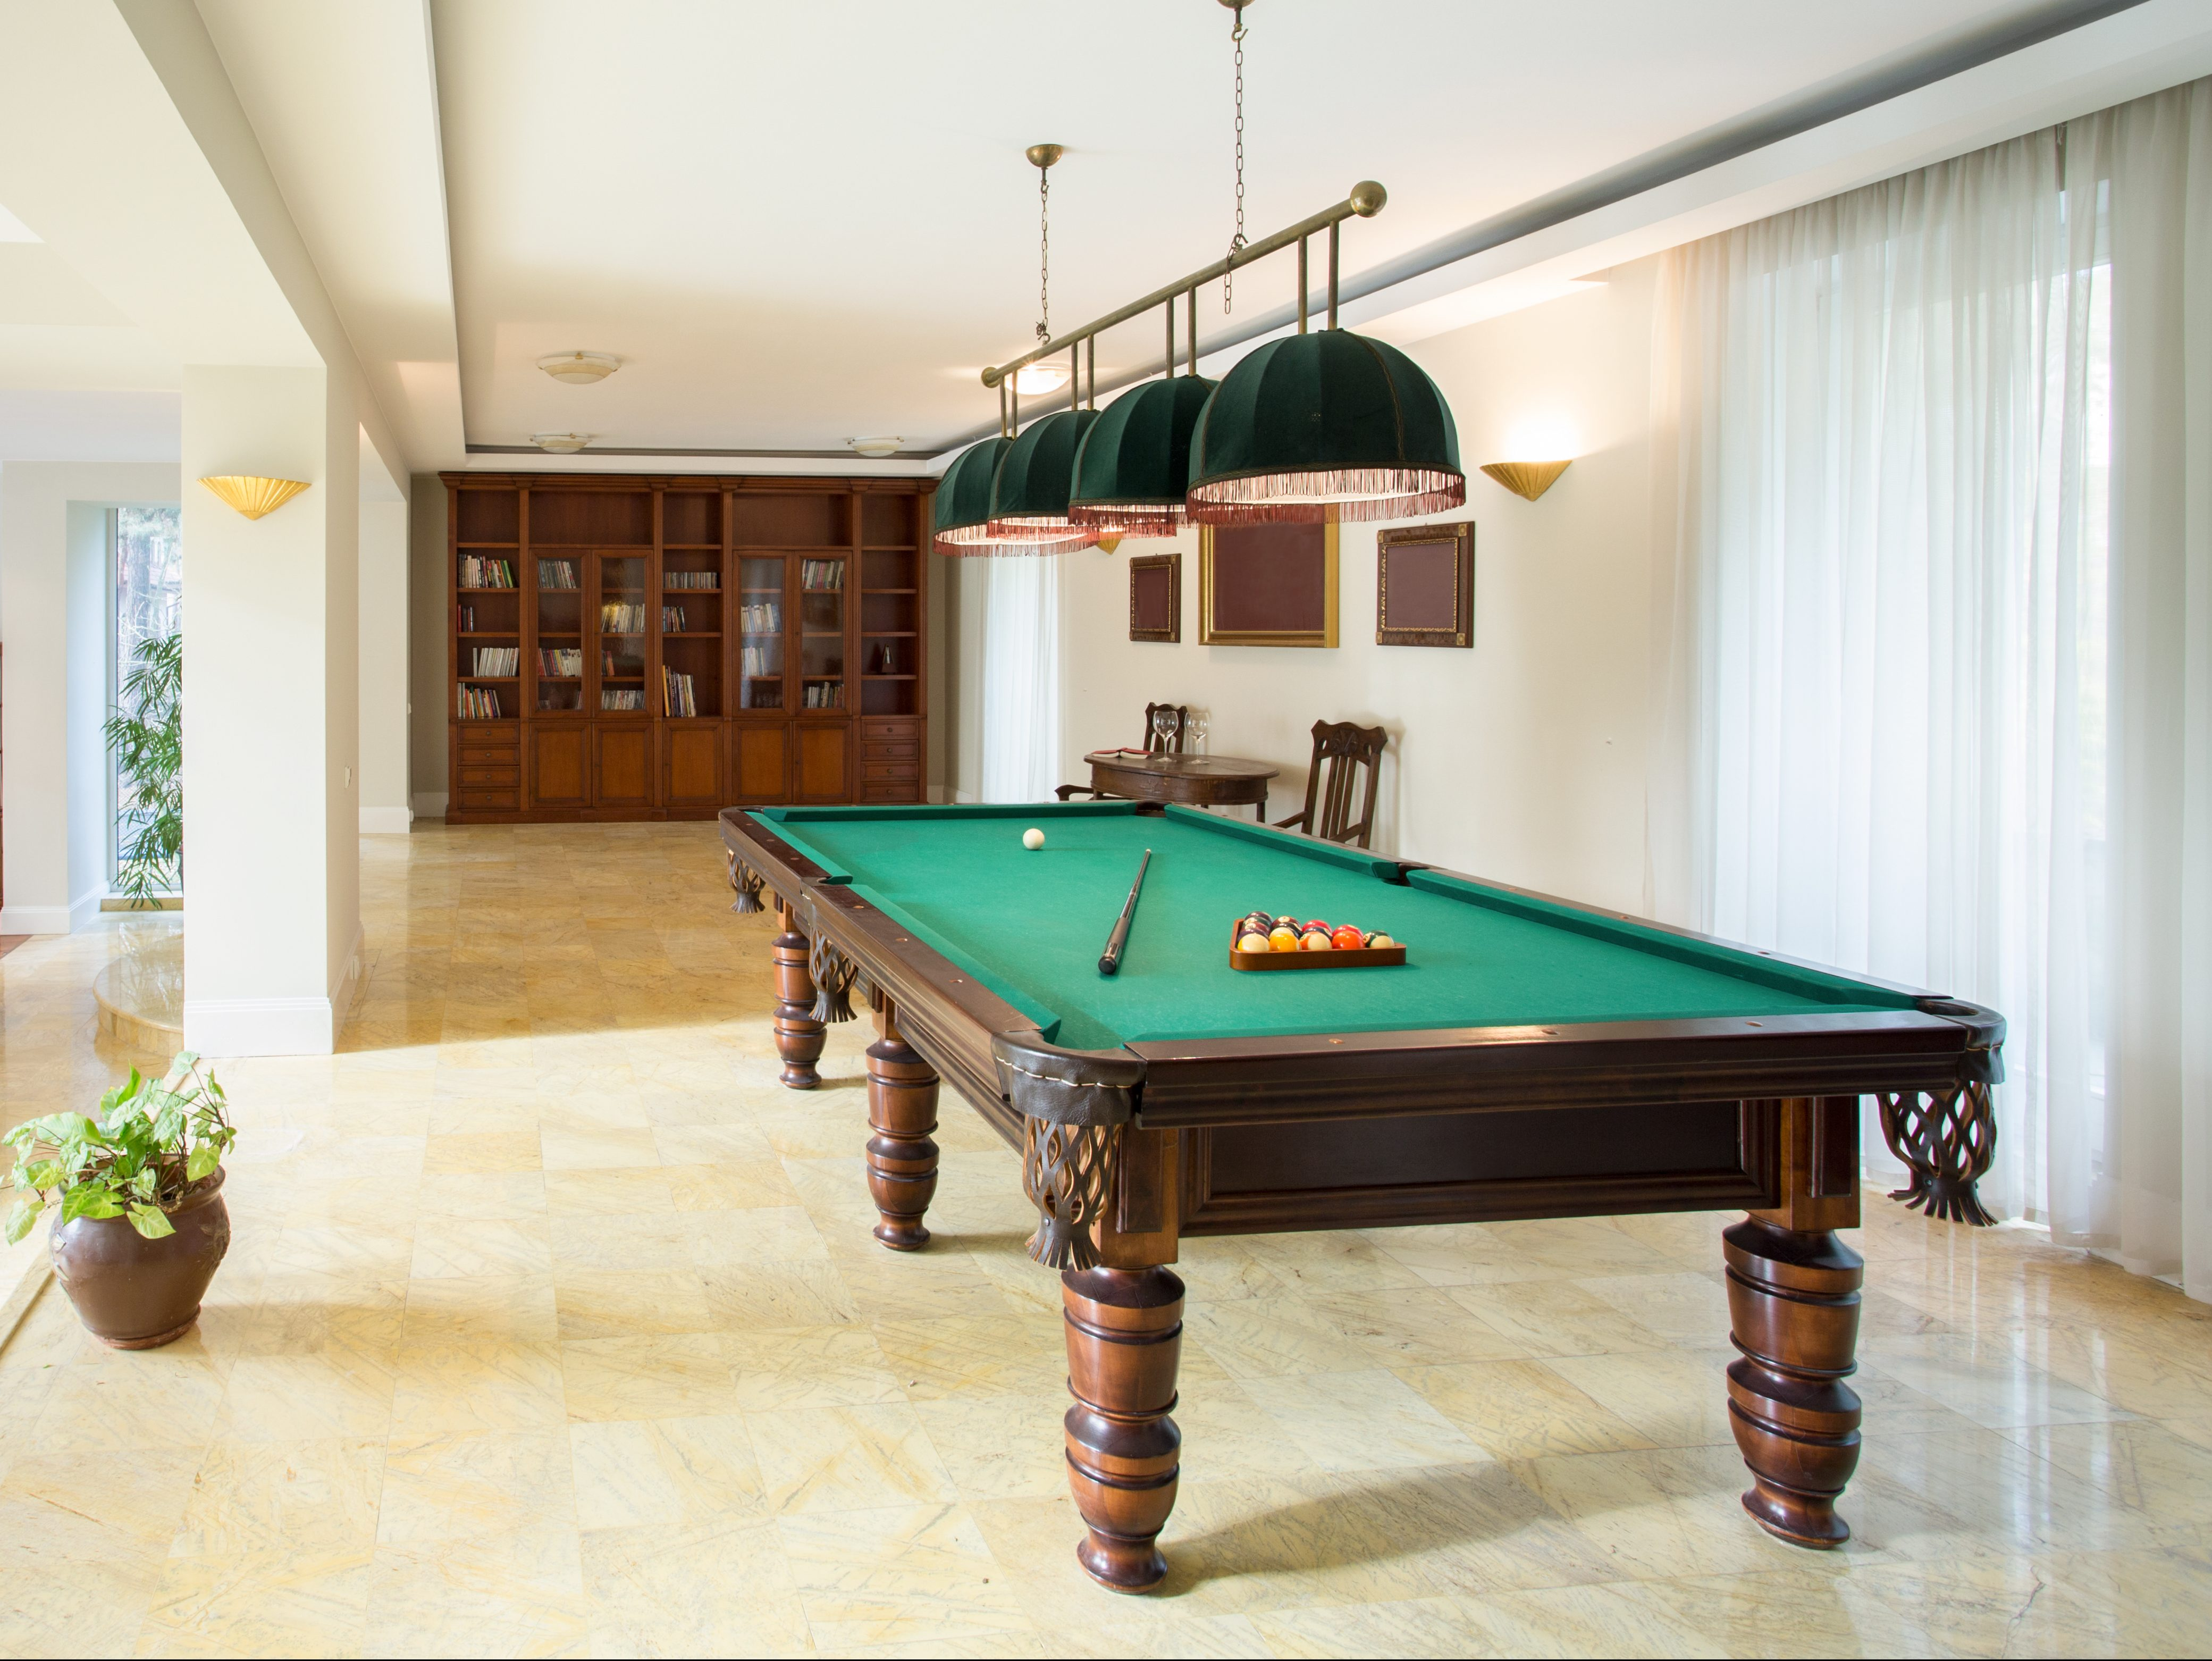 Best Pool Tables (2020): Home Billiard Tables to Buy Online